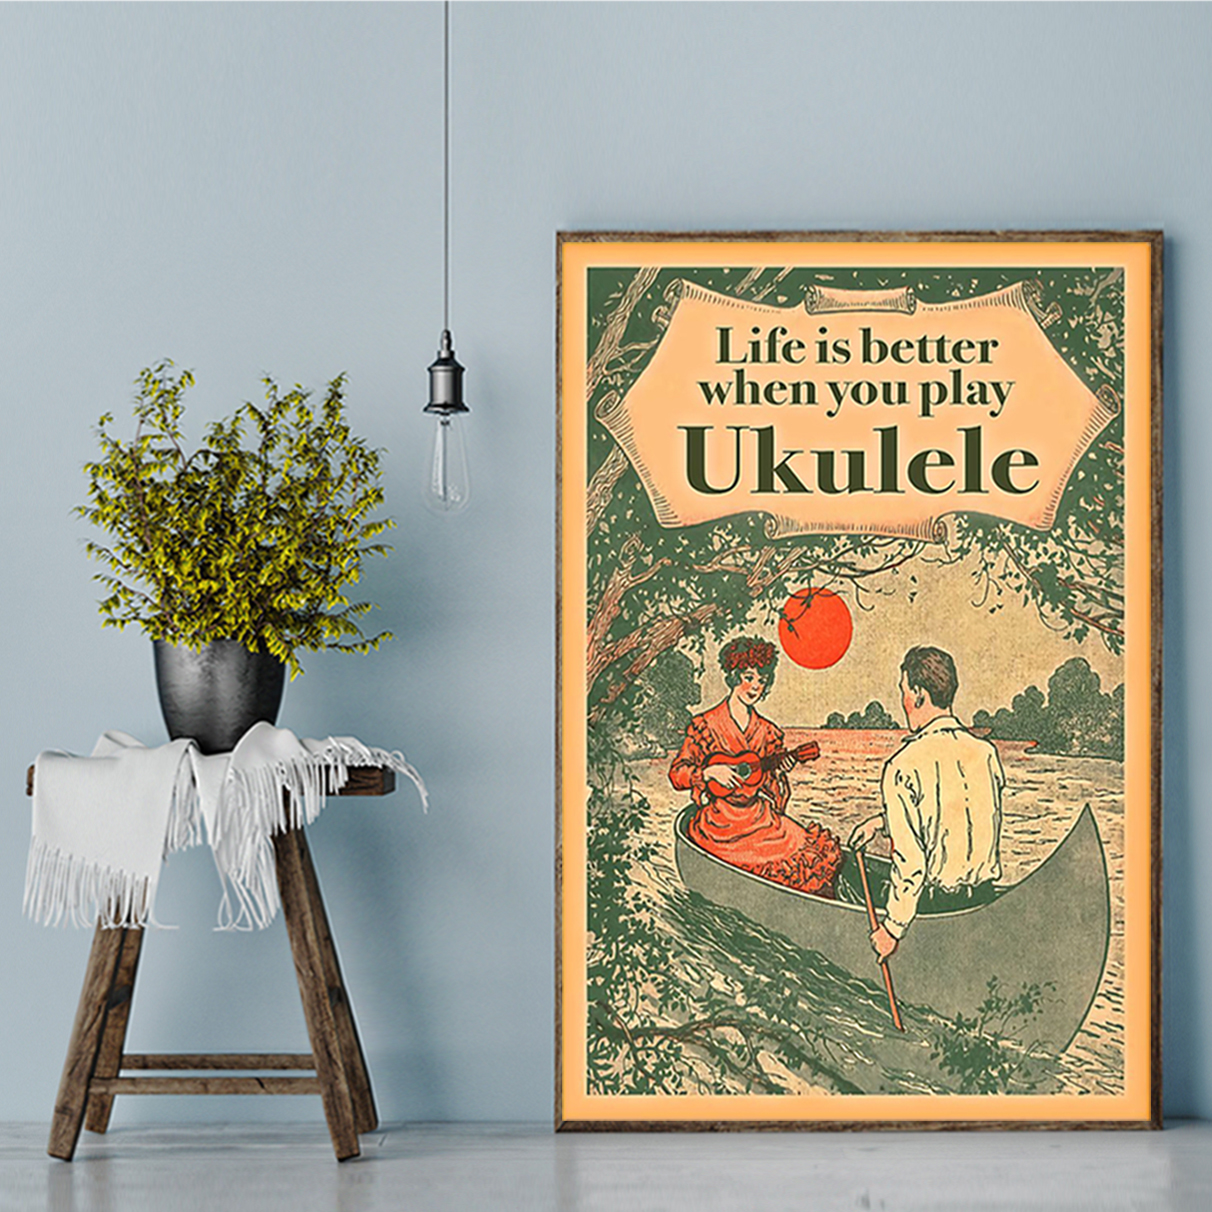 Life is better when you play ukulele poster A2